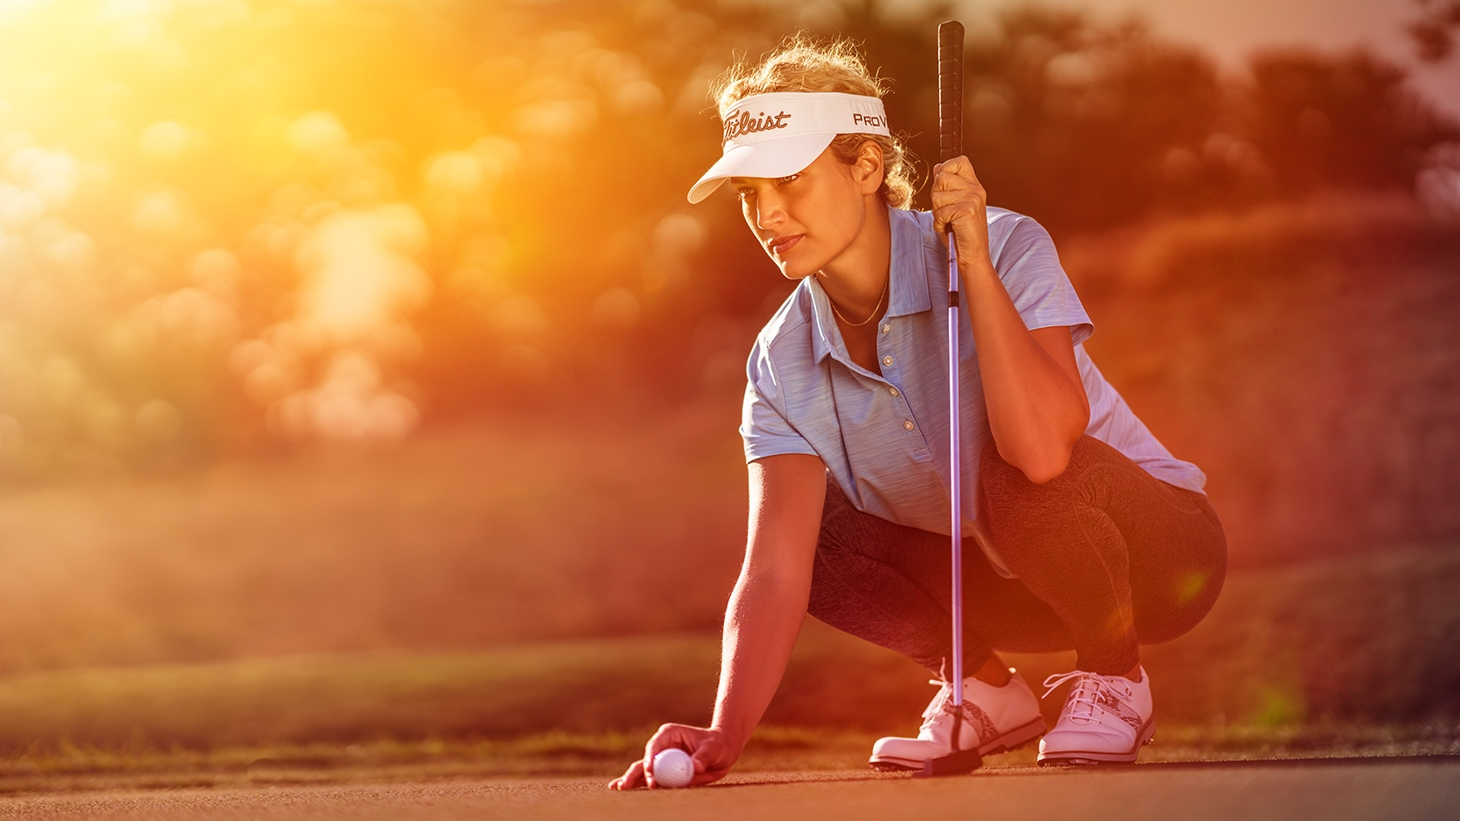 A golfer lines up a putt with her new Pro V1 golf ball